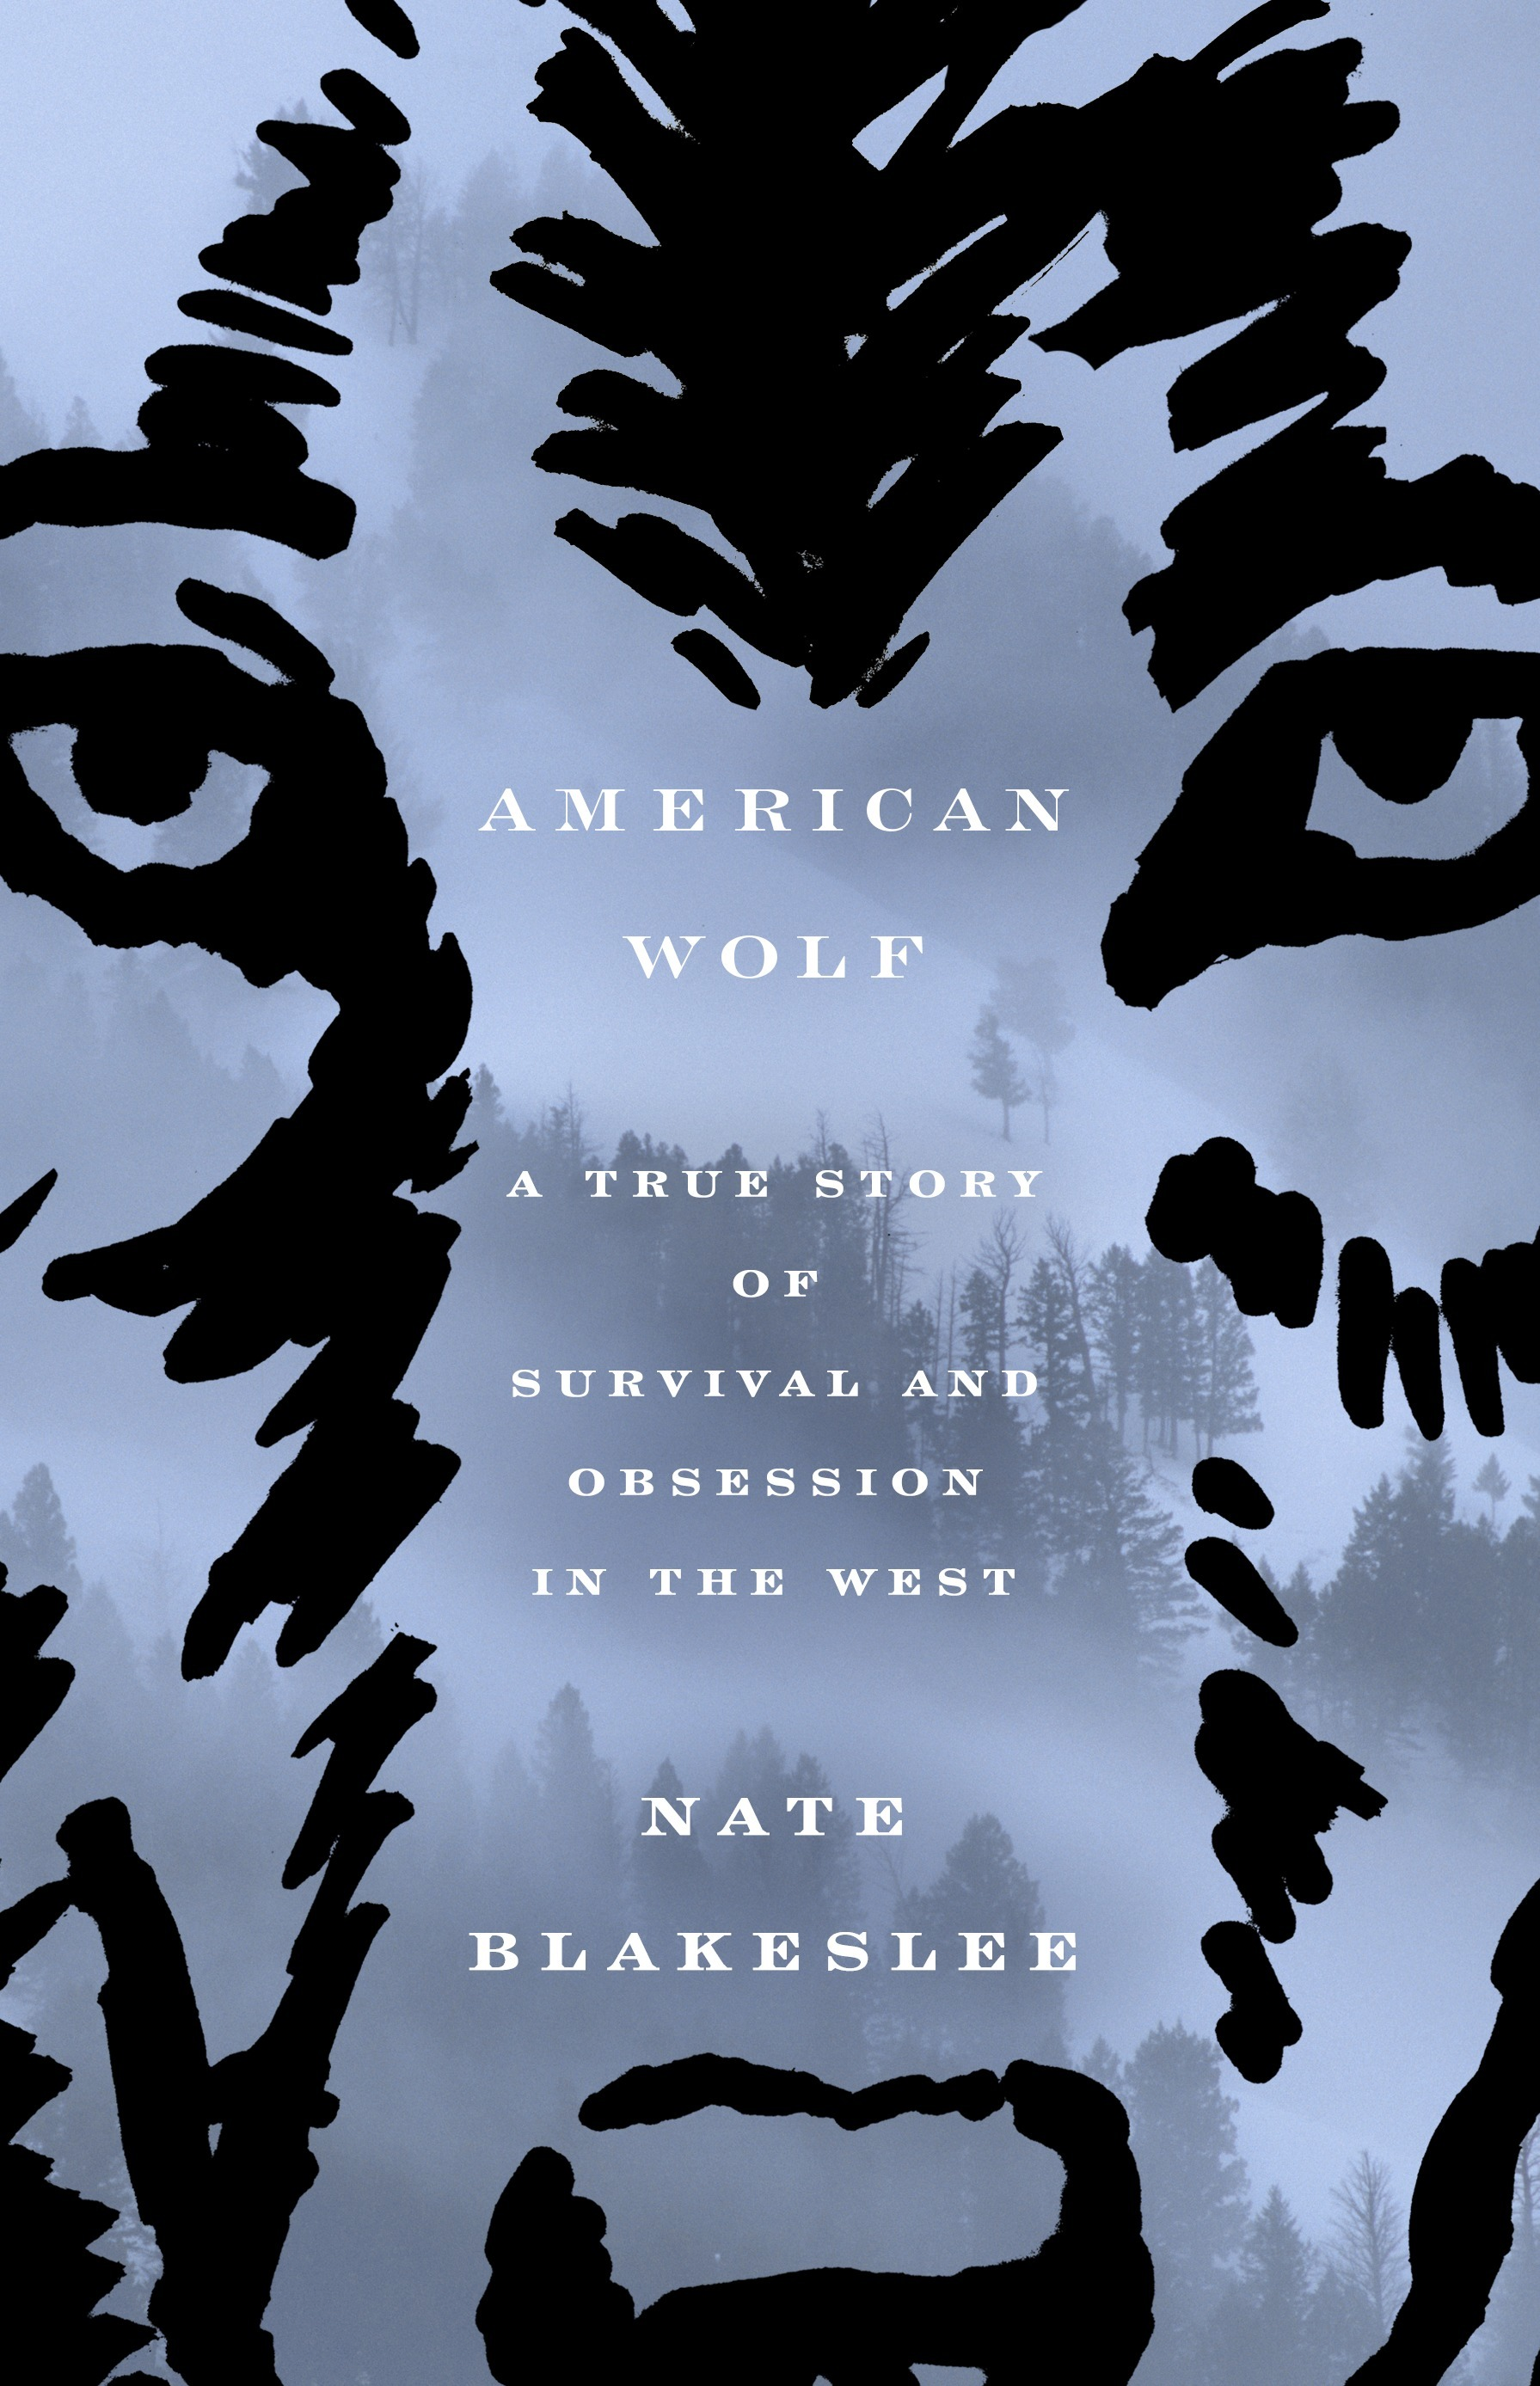 American Wolf A True Story of Survival and Obsession in the West